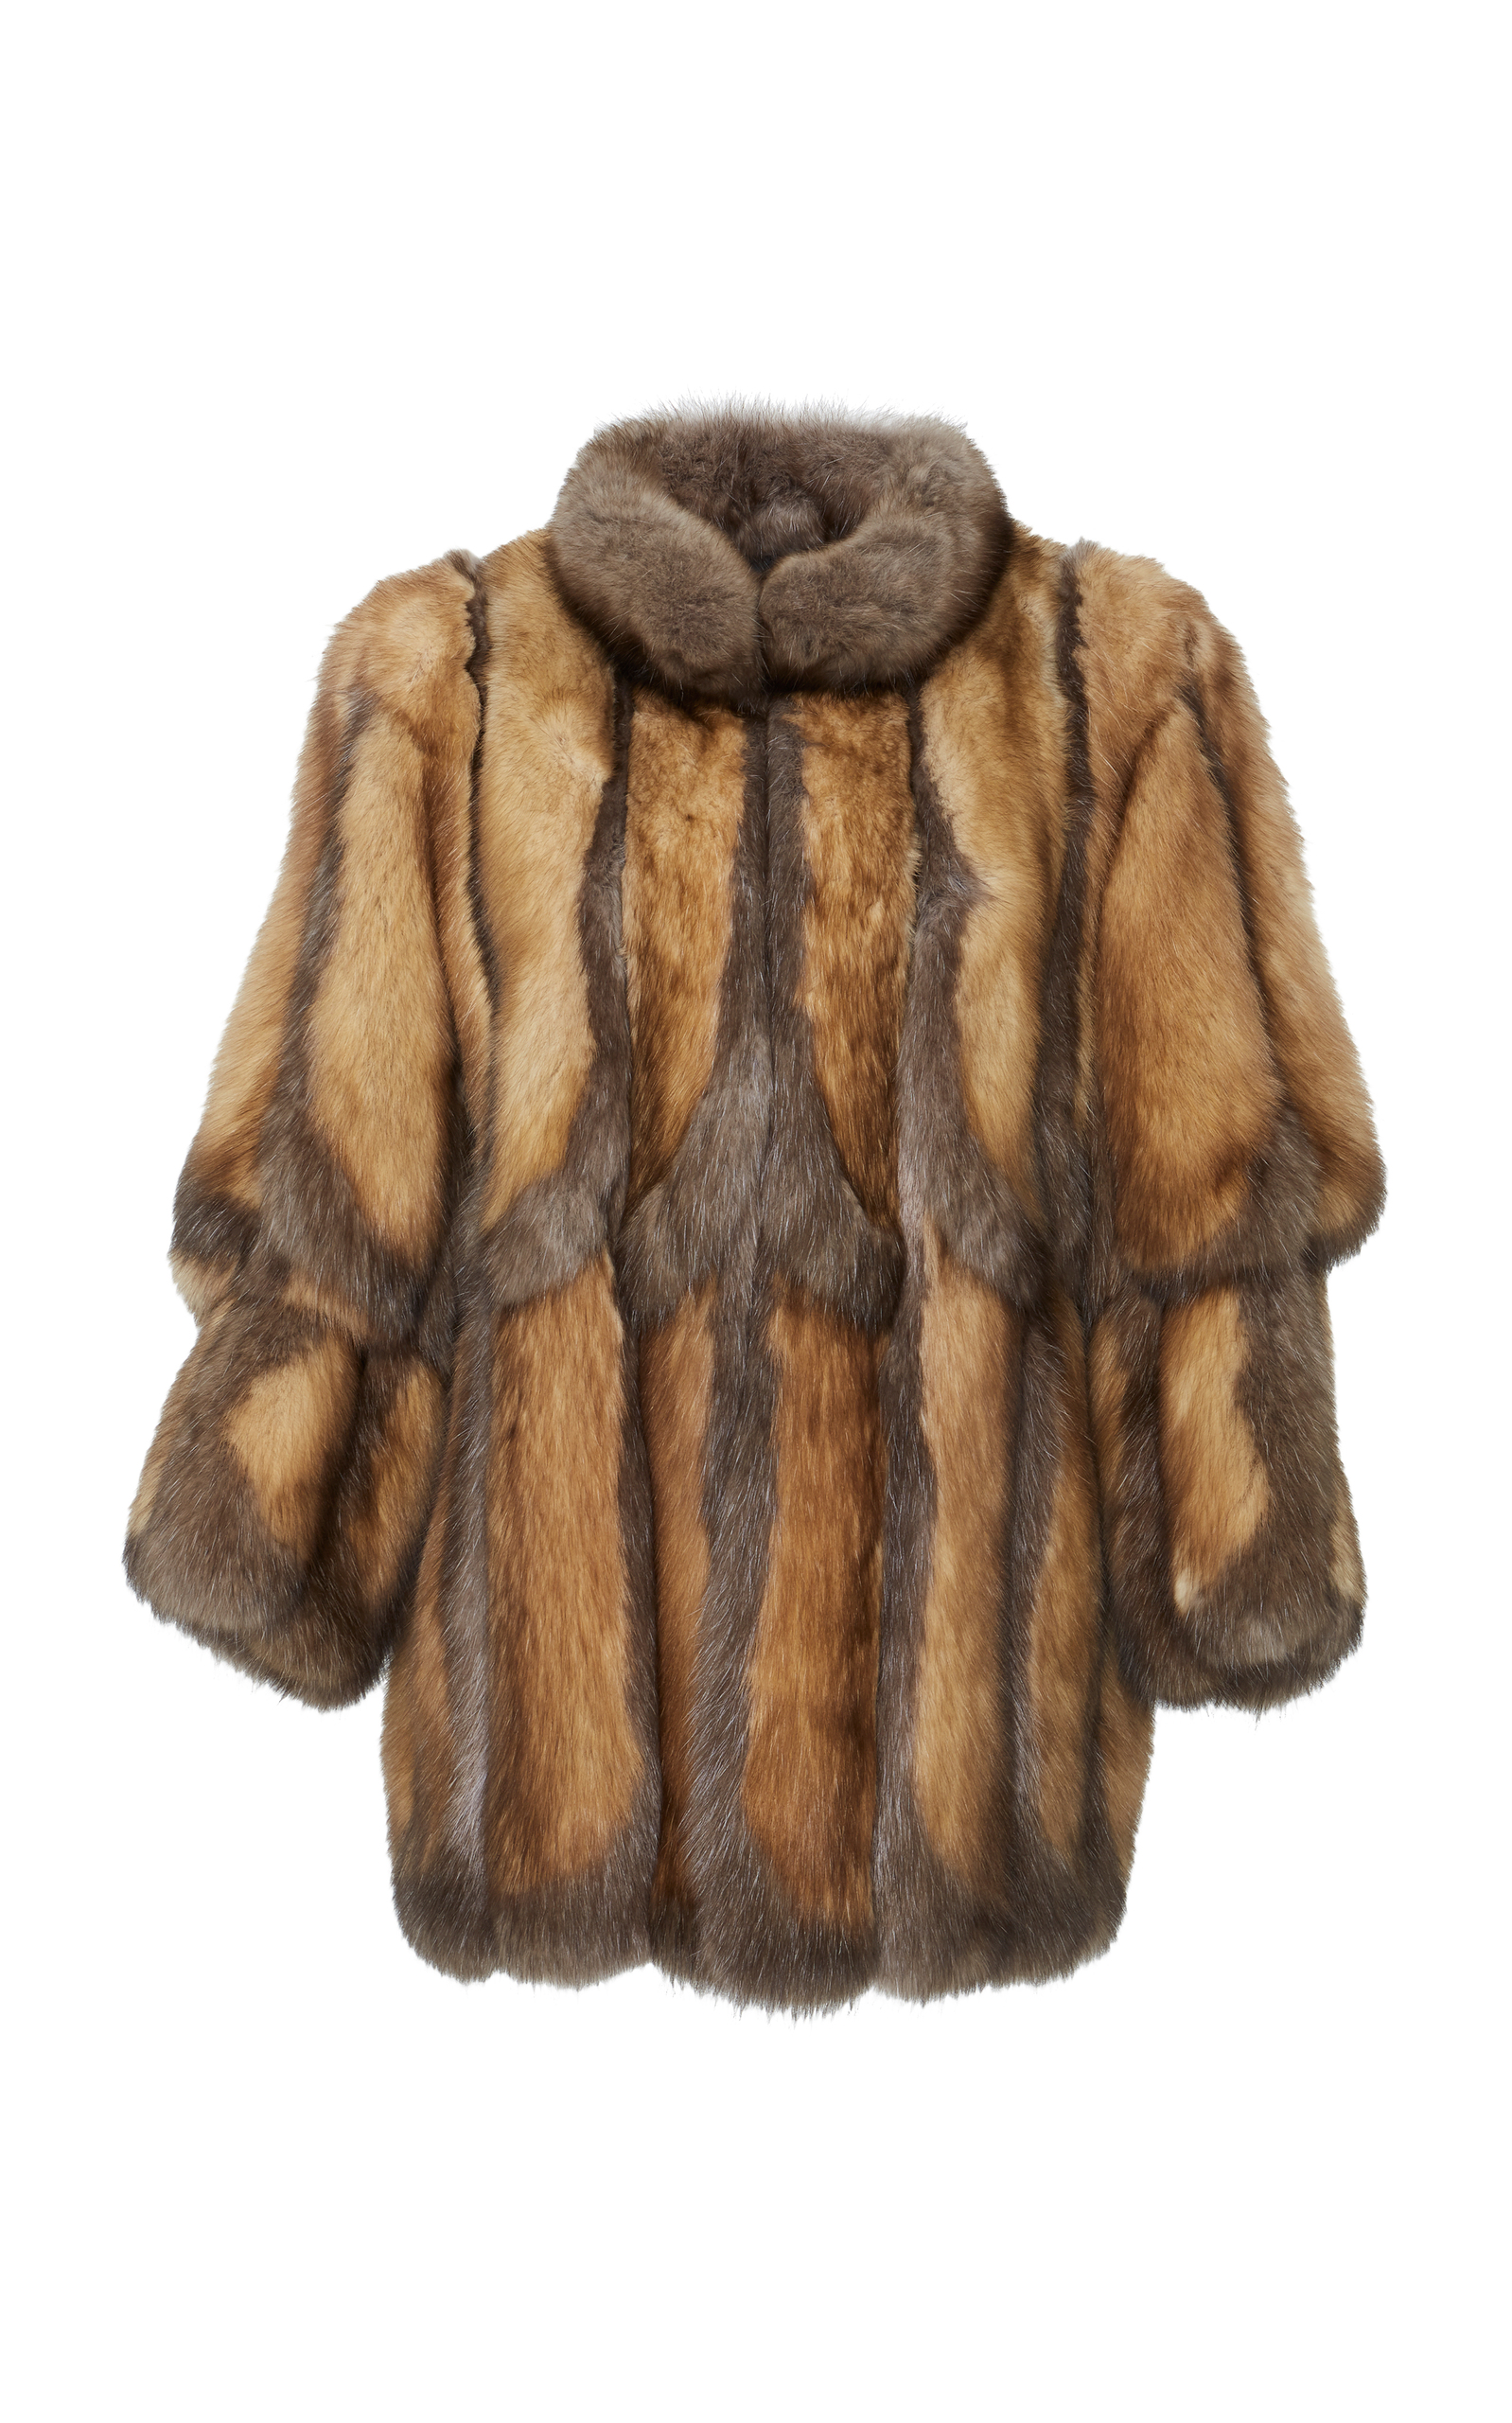 Scalloped Sable Coat by J. Mendel | Moda Operandi for Sable Fur Cape  174mzq